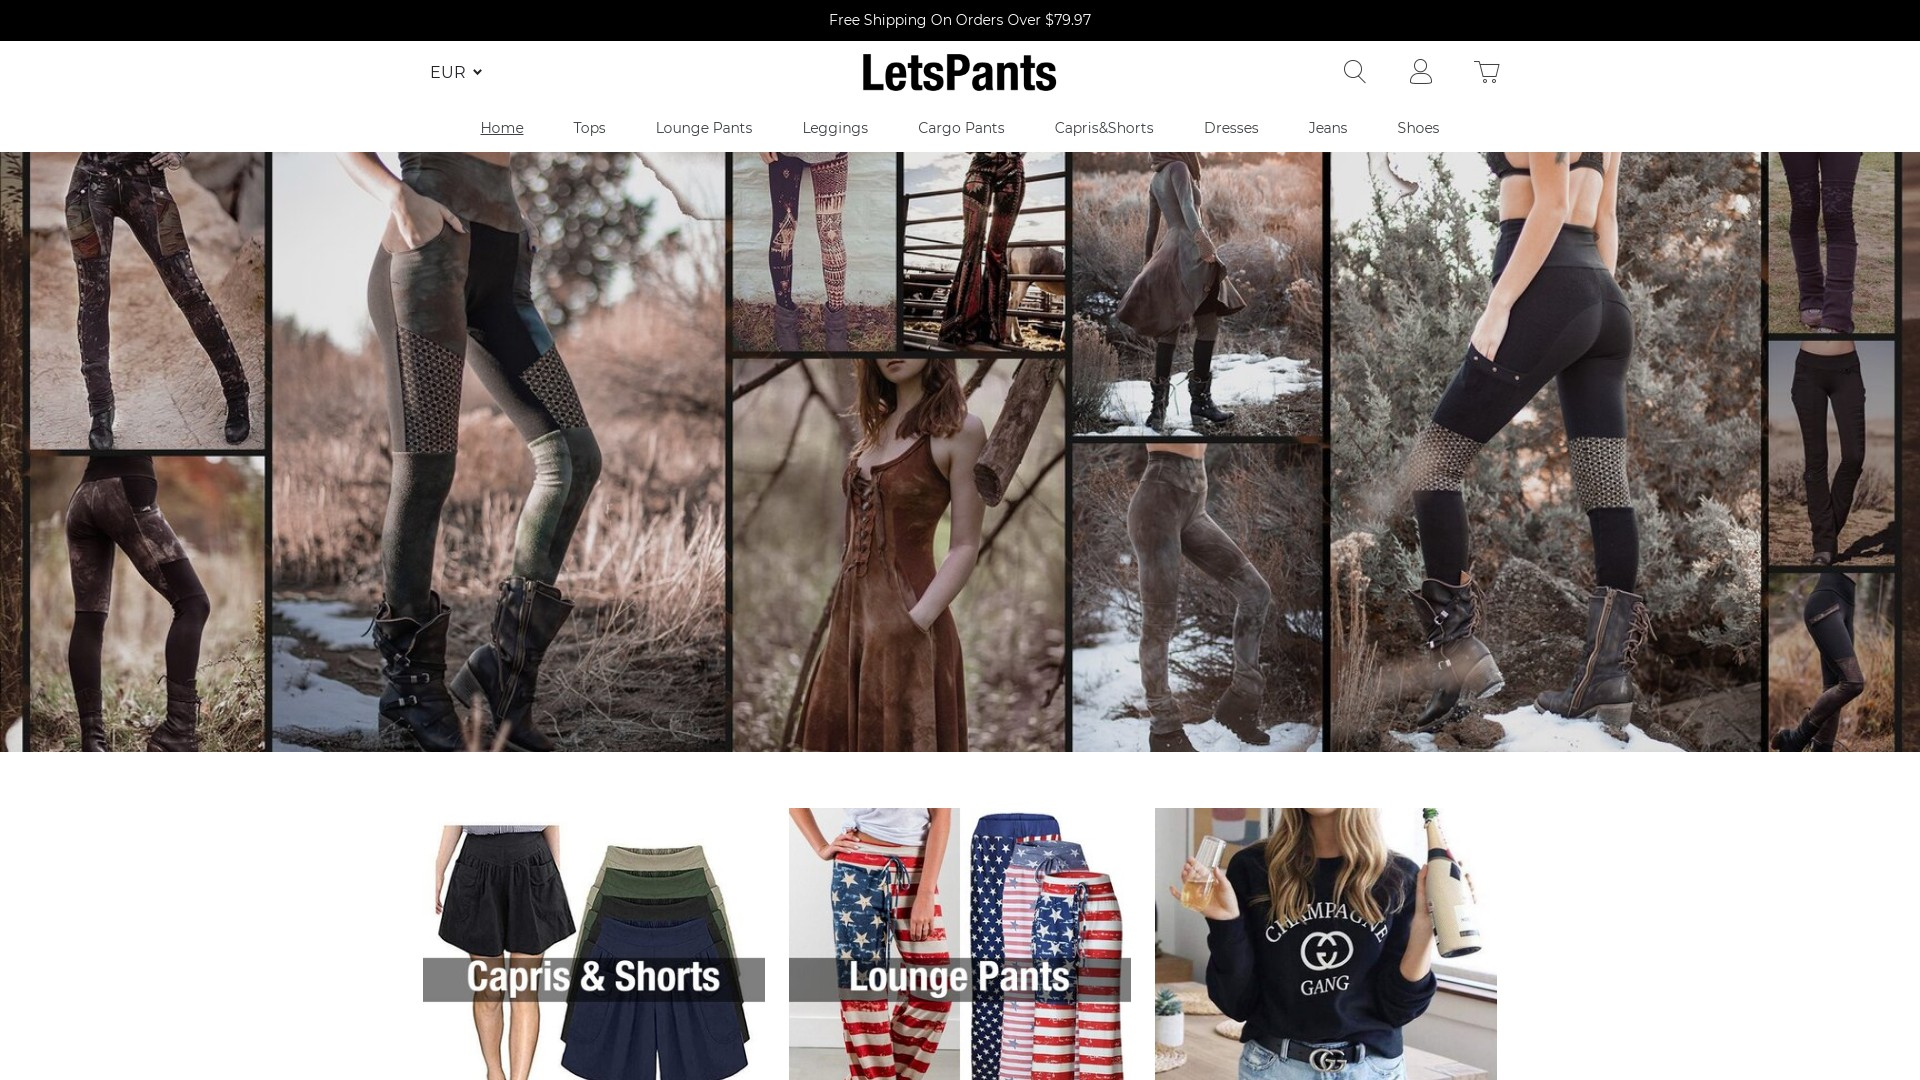 Is Letspants a Scam? Review of the Apparel Store